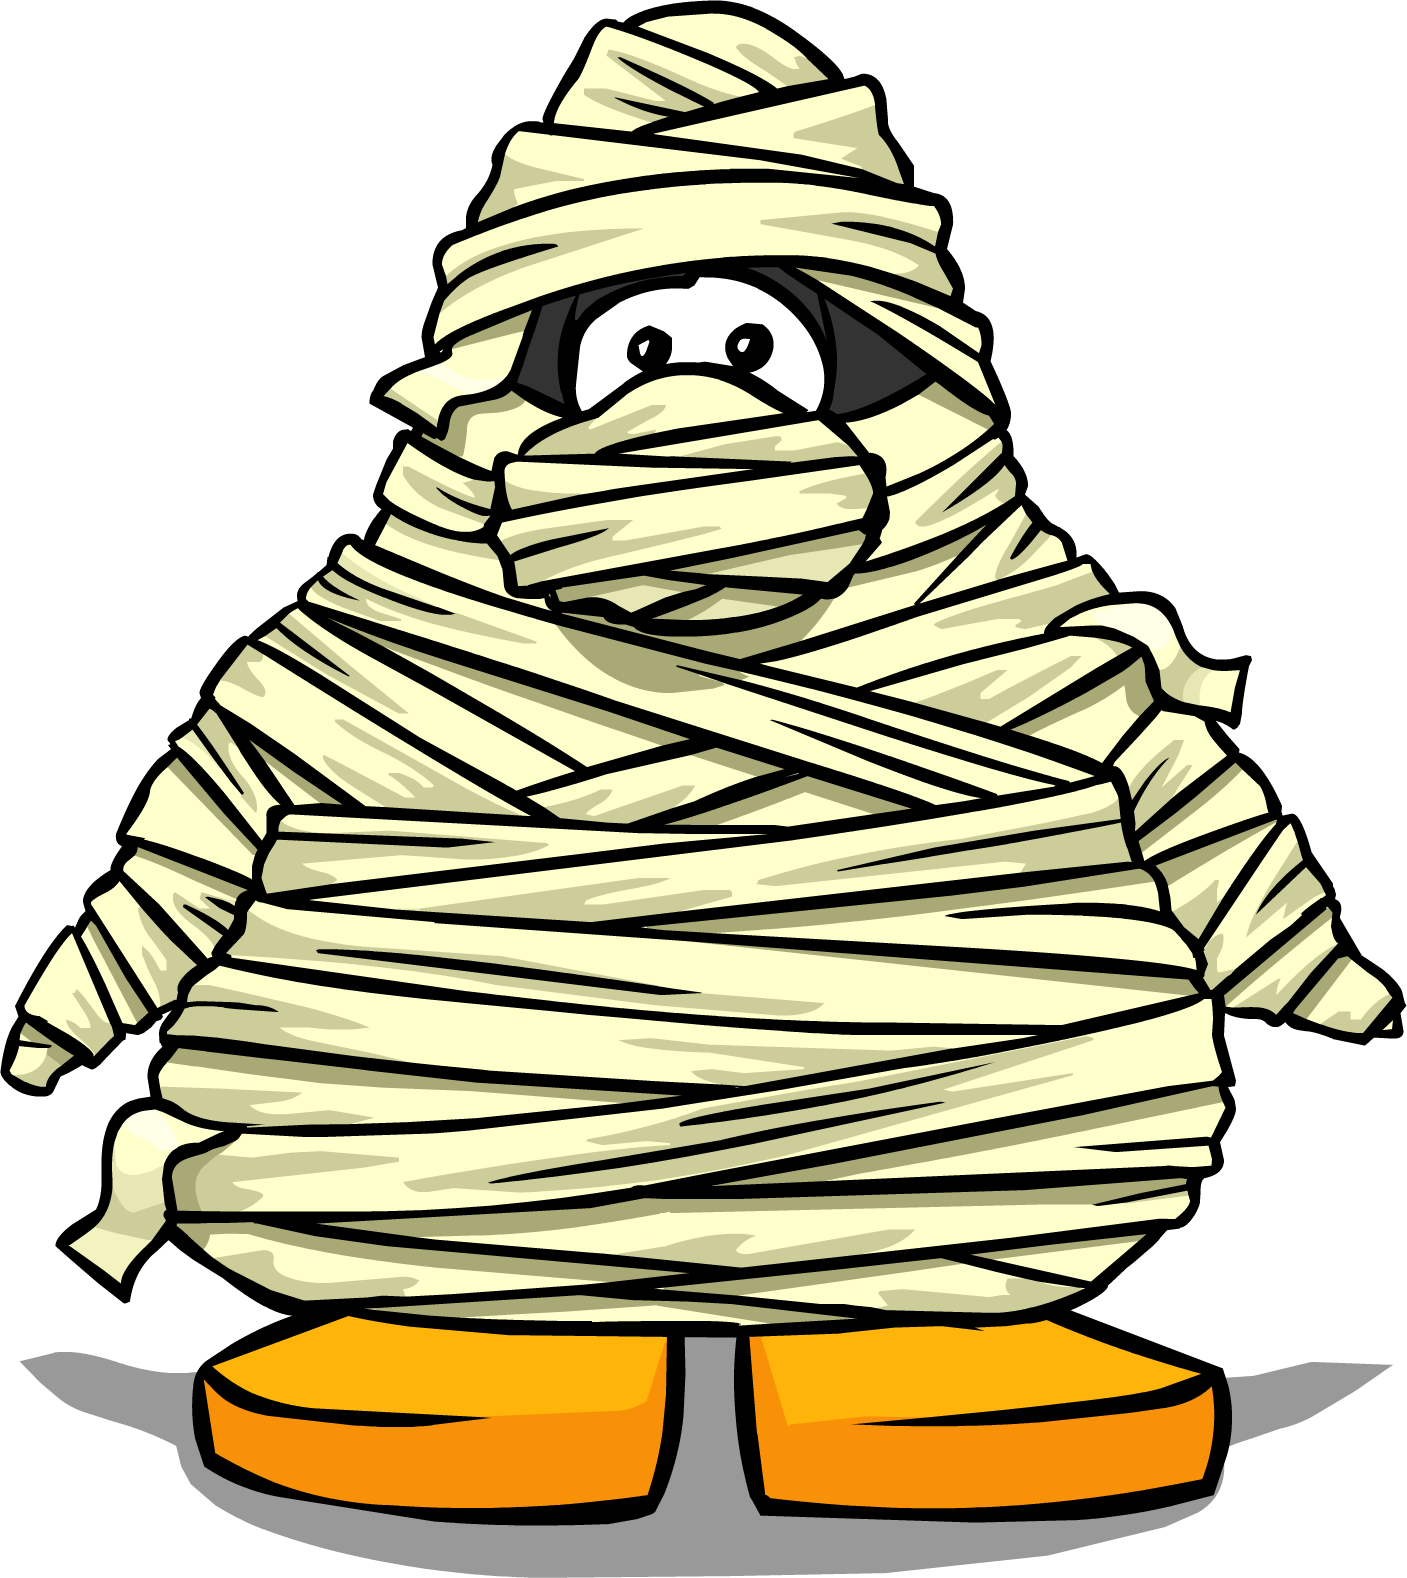 Mummy clipart walking. Image costume from a